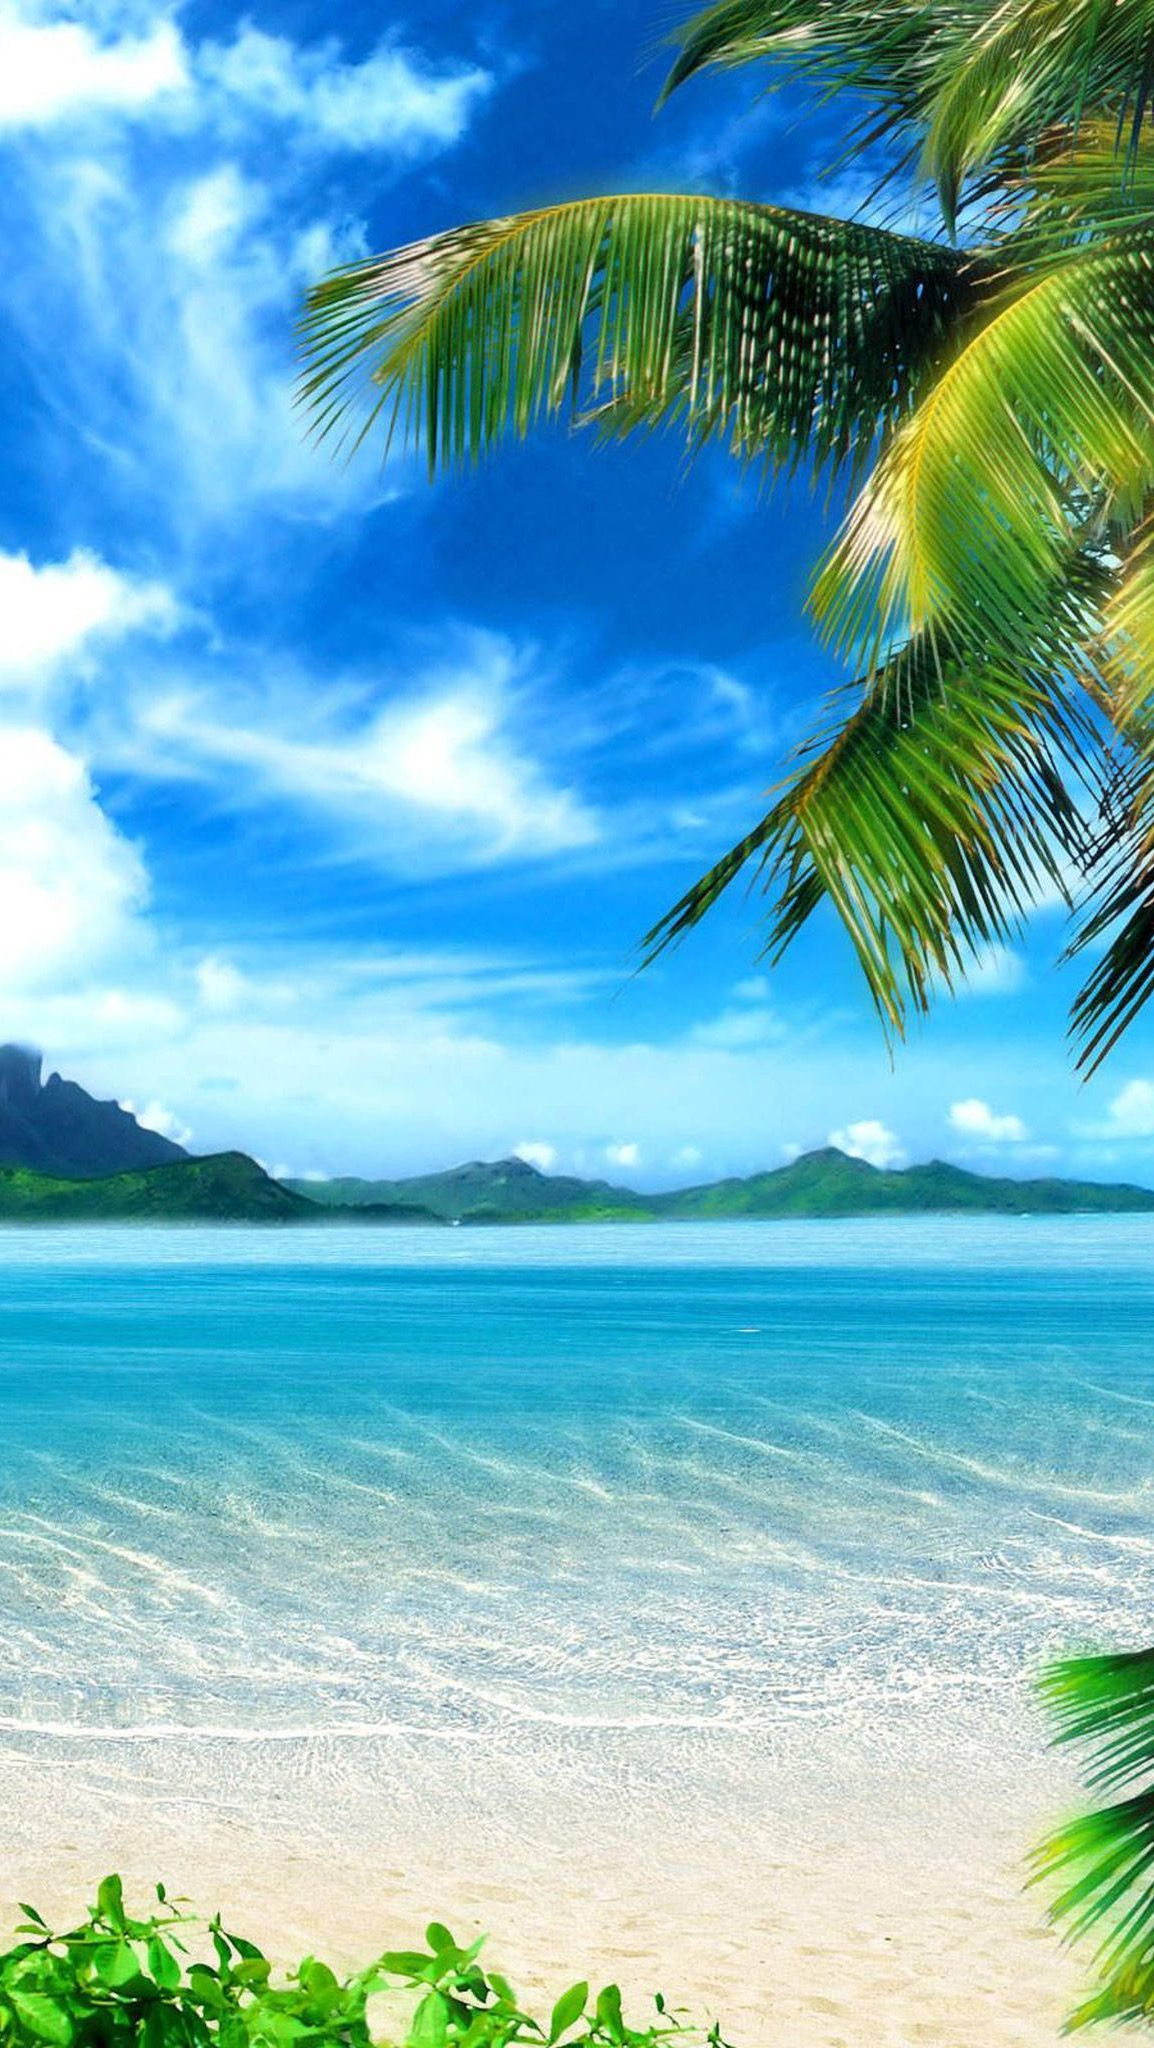 Tropical beach landscape wallpapers top free tropical - Caribbean iphone wallpaper ...